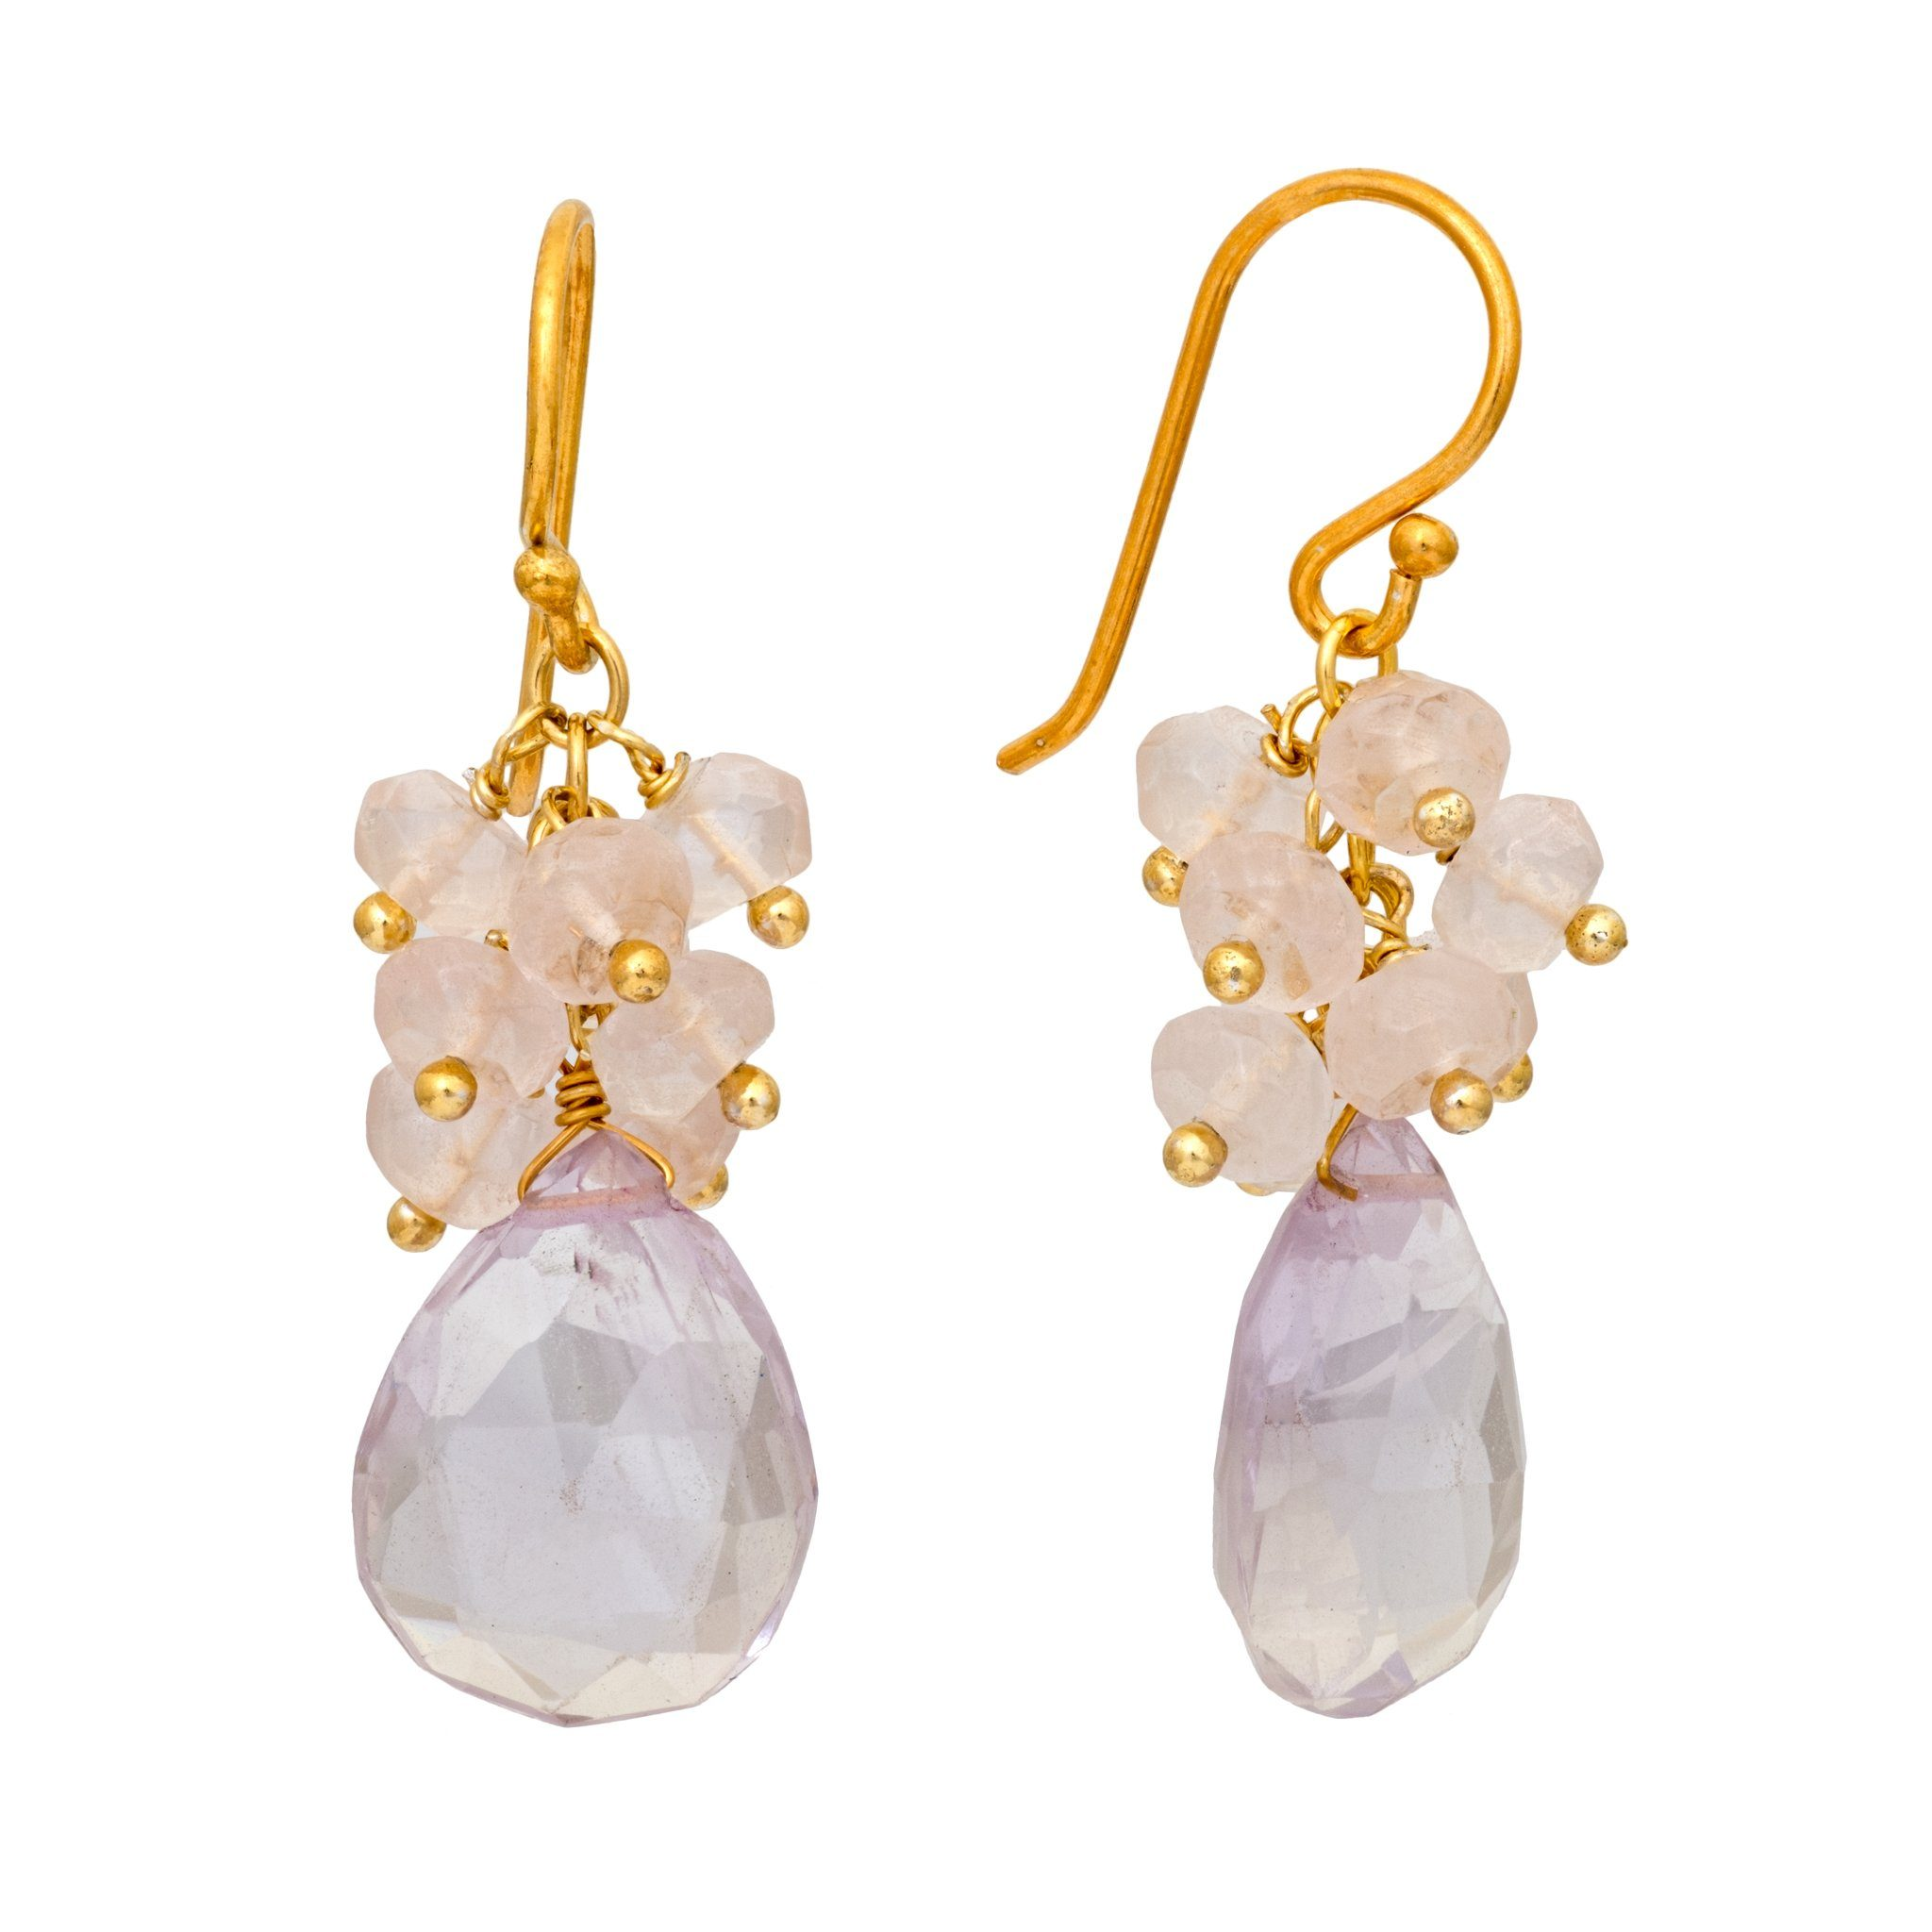 GRAPA rose quartz cluster earrings